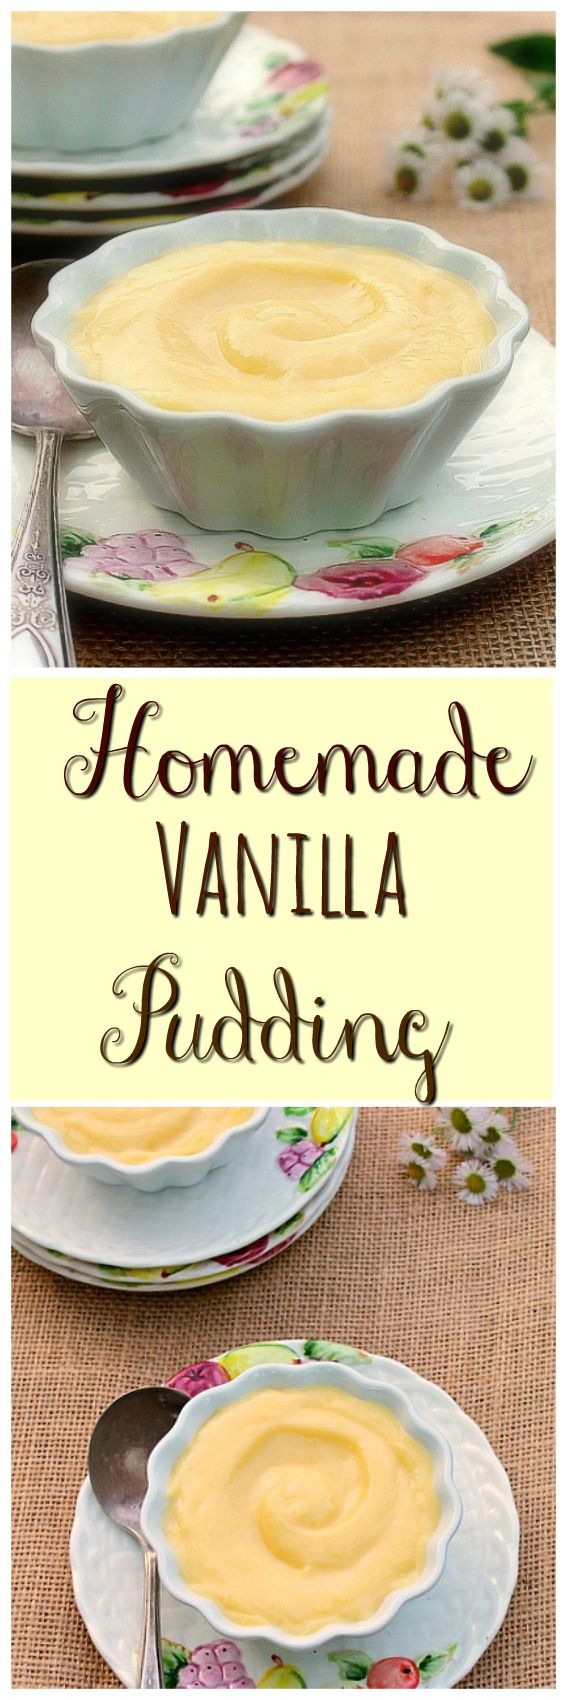 Homemade Vanilla Pudding...This luscious pudding is easy to make and delicious. It's made with Half and Half which gives it a smooth, creamy texture along with the wonderful vanilla flavor.